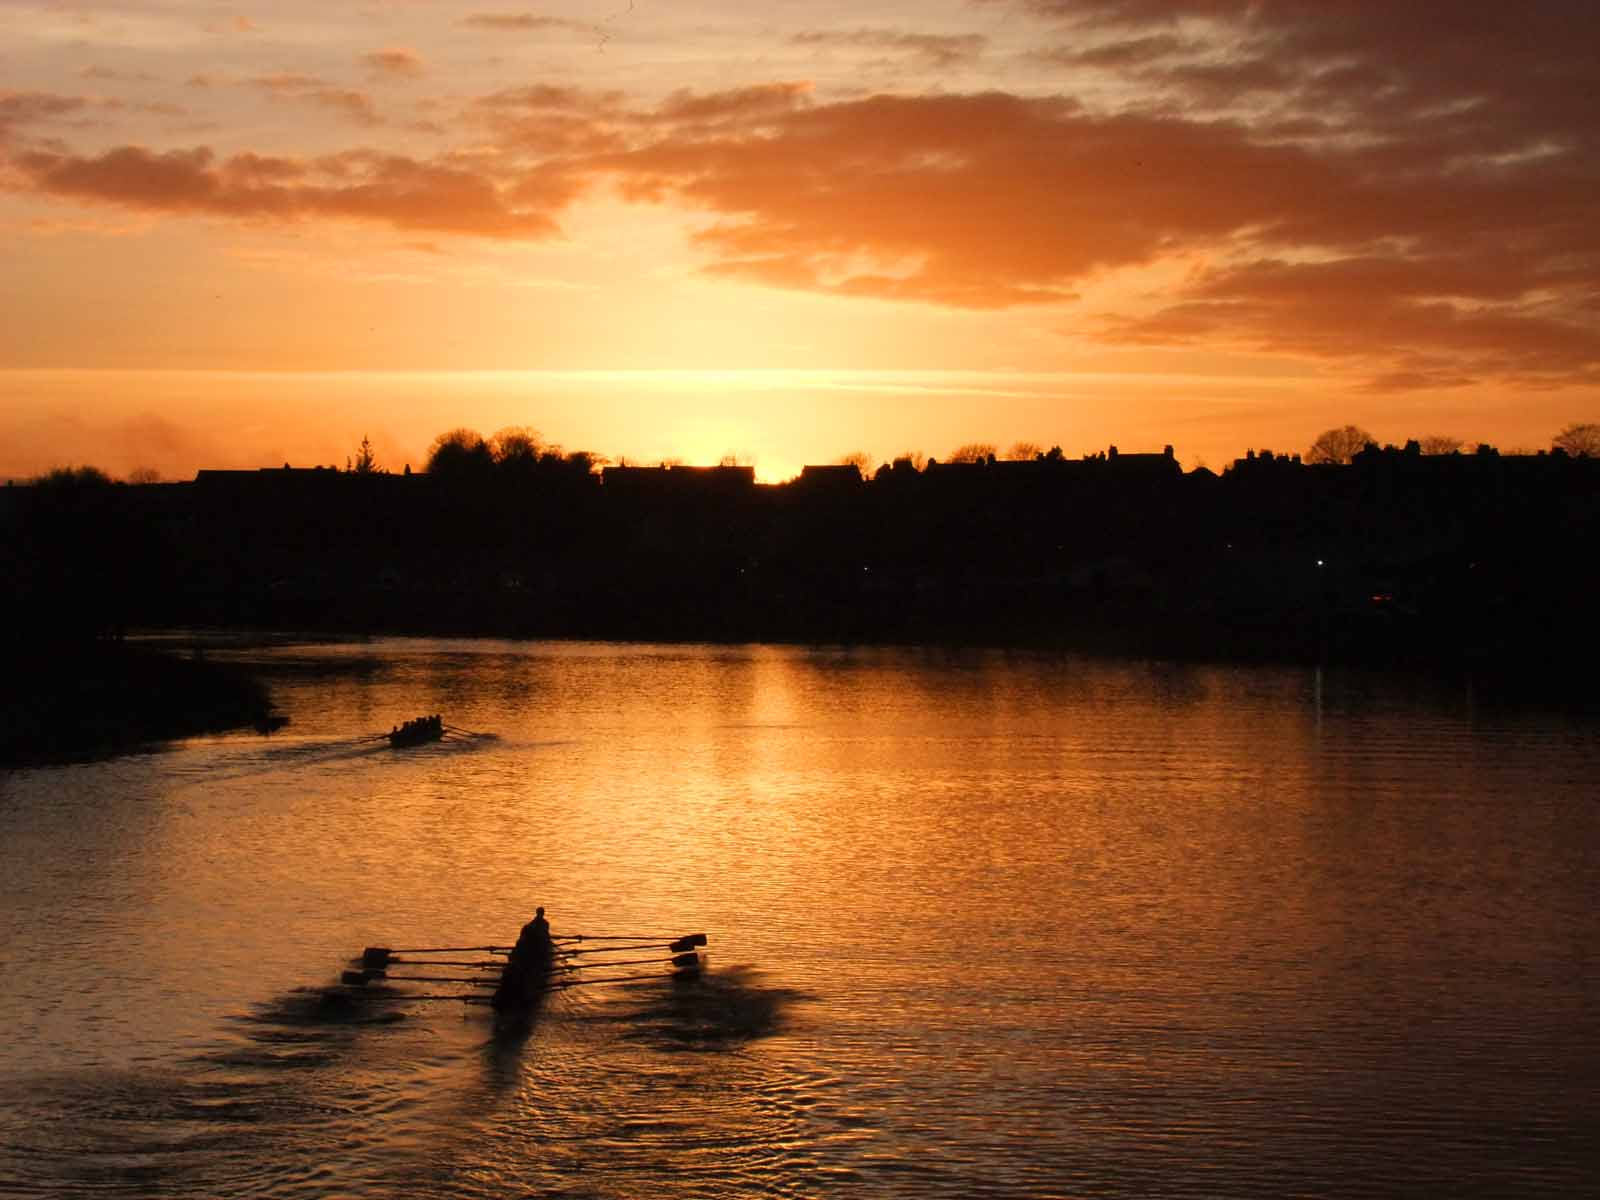 Rowers on the Dee at Dusk